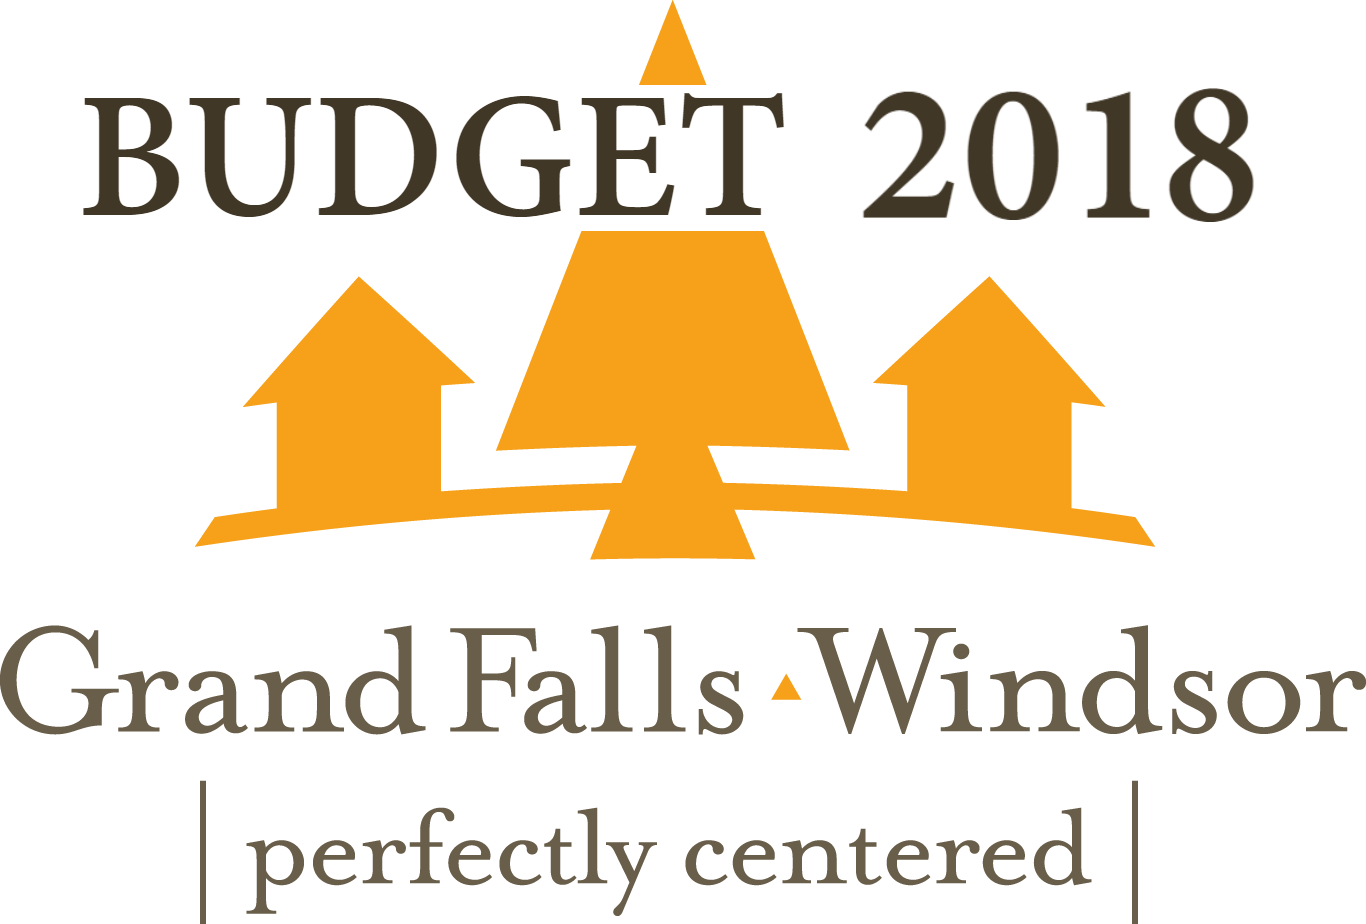 grand falls windsor men 24 new listings in the grand falls - windsor, nl area browse photos, find recently added listings of homes,.